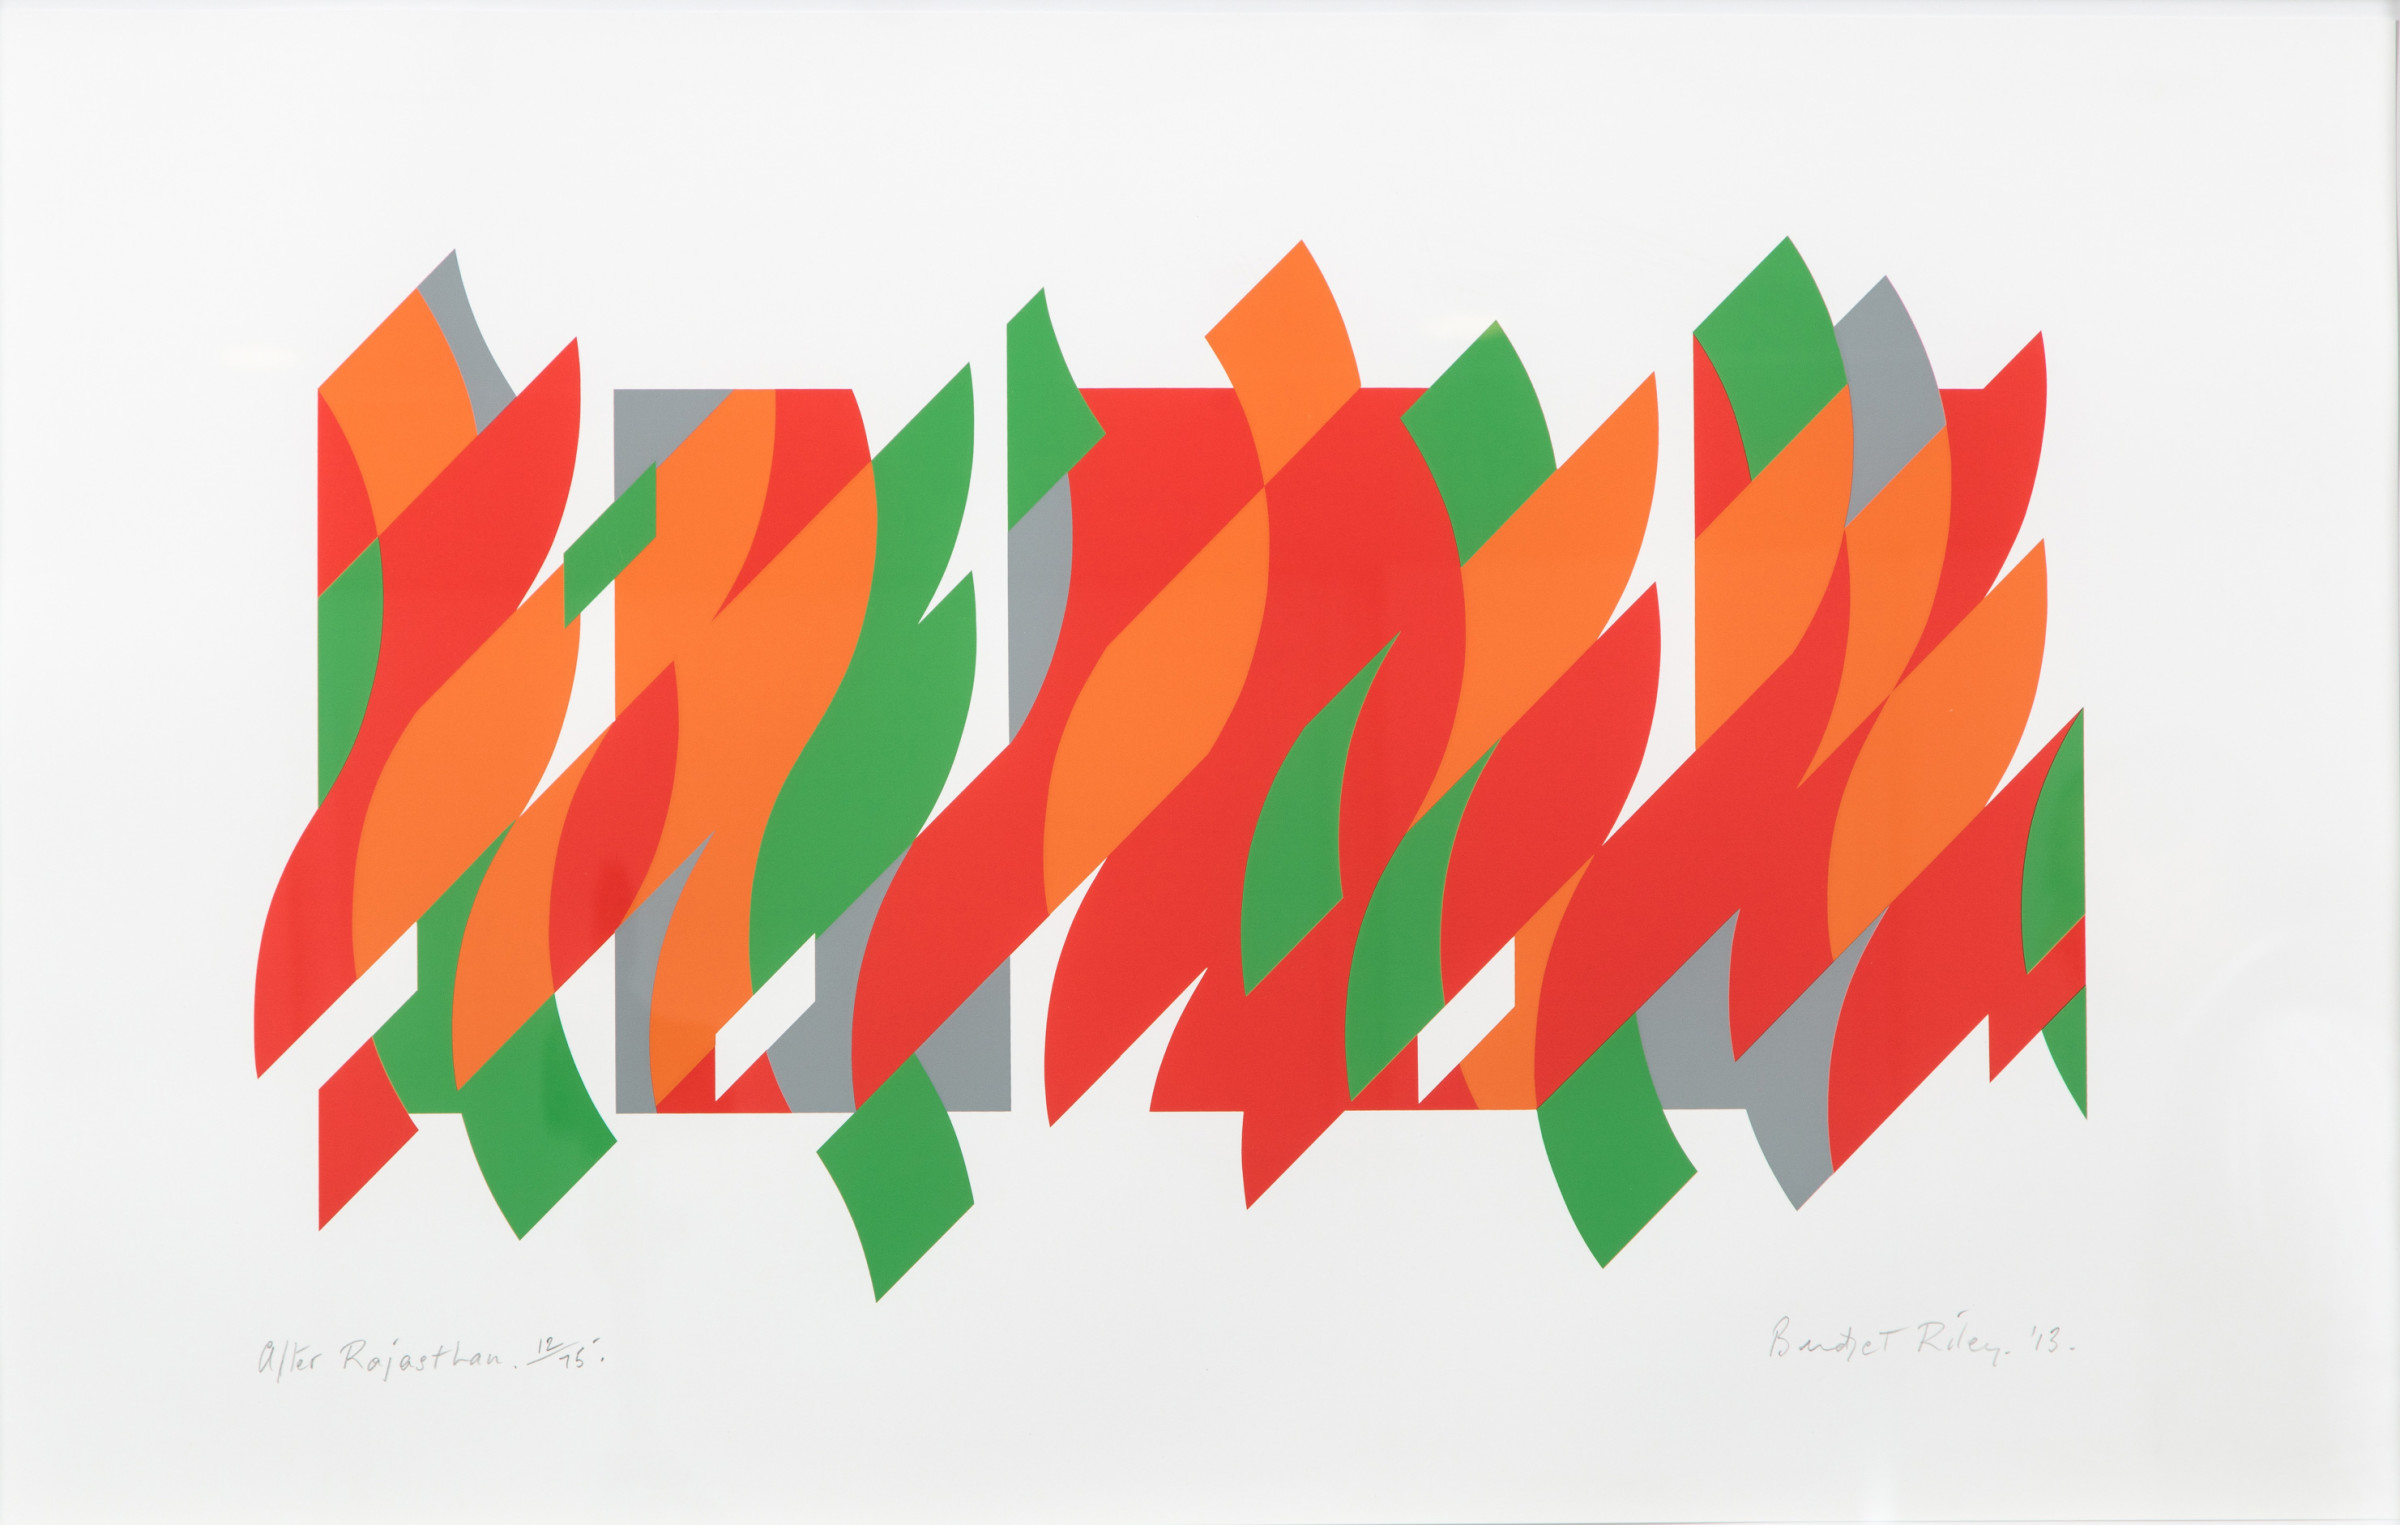 "<span class=""link fancybox-details-link""><a href=""/artists/72-bridget-riley/works/966/"">View Detail Page</a></span><div class=""artist""><strong>Bridget Riley</strong></div> b. 1931 <div class=""title""><em>After Rajasthan</em>, 2013</div> <div class=""signed_and_dated"">signed and dated in pencil<br /> from the edition of 75</div> <div class=""medium"">screenprint</div> <div class=""dimensions"">58.5 x 93.3cm</div> <div class=""edition_details""></div><div class=""copyright_line"">Copyright The Artist</div>"